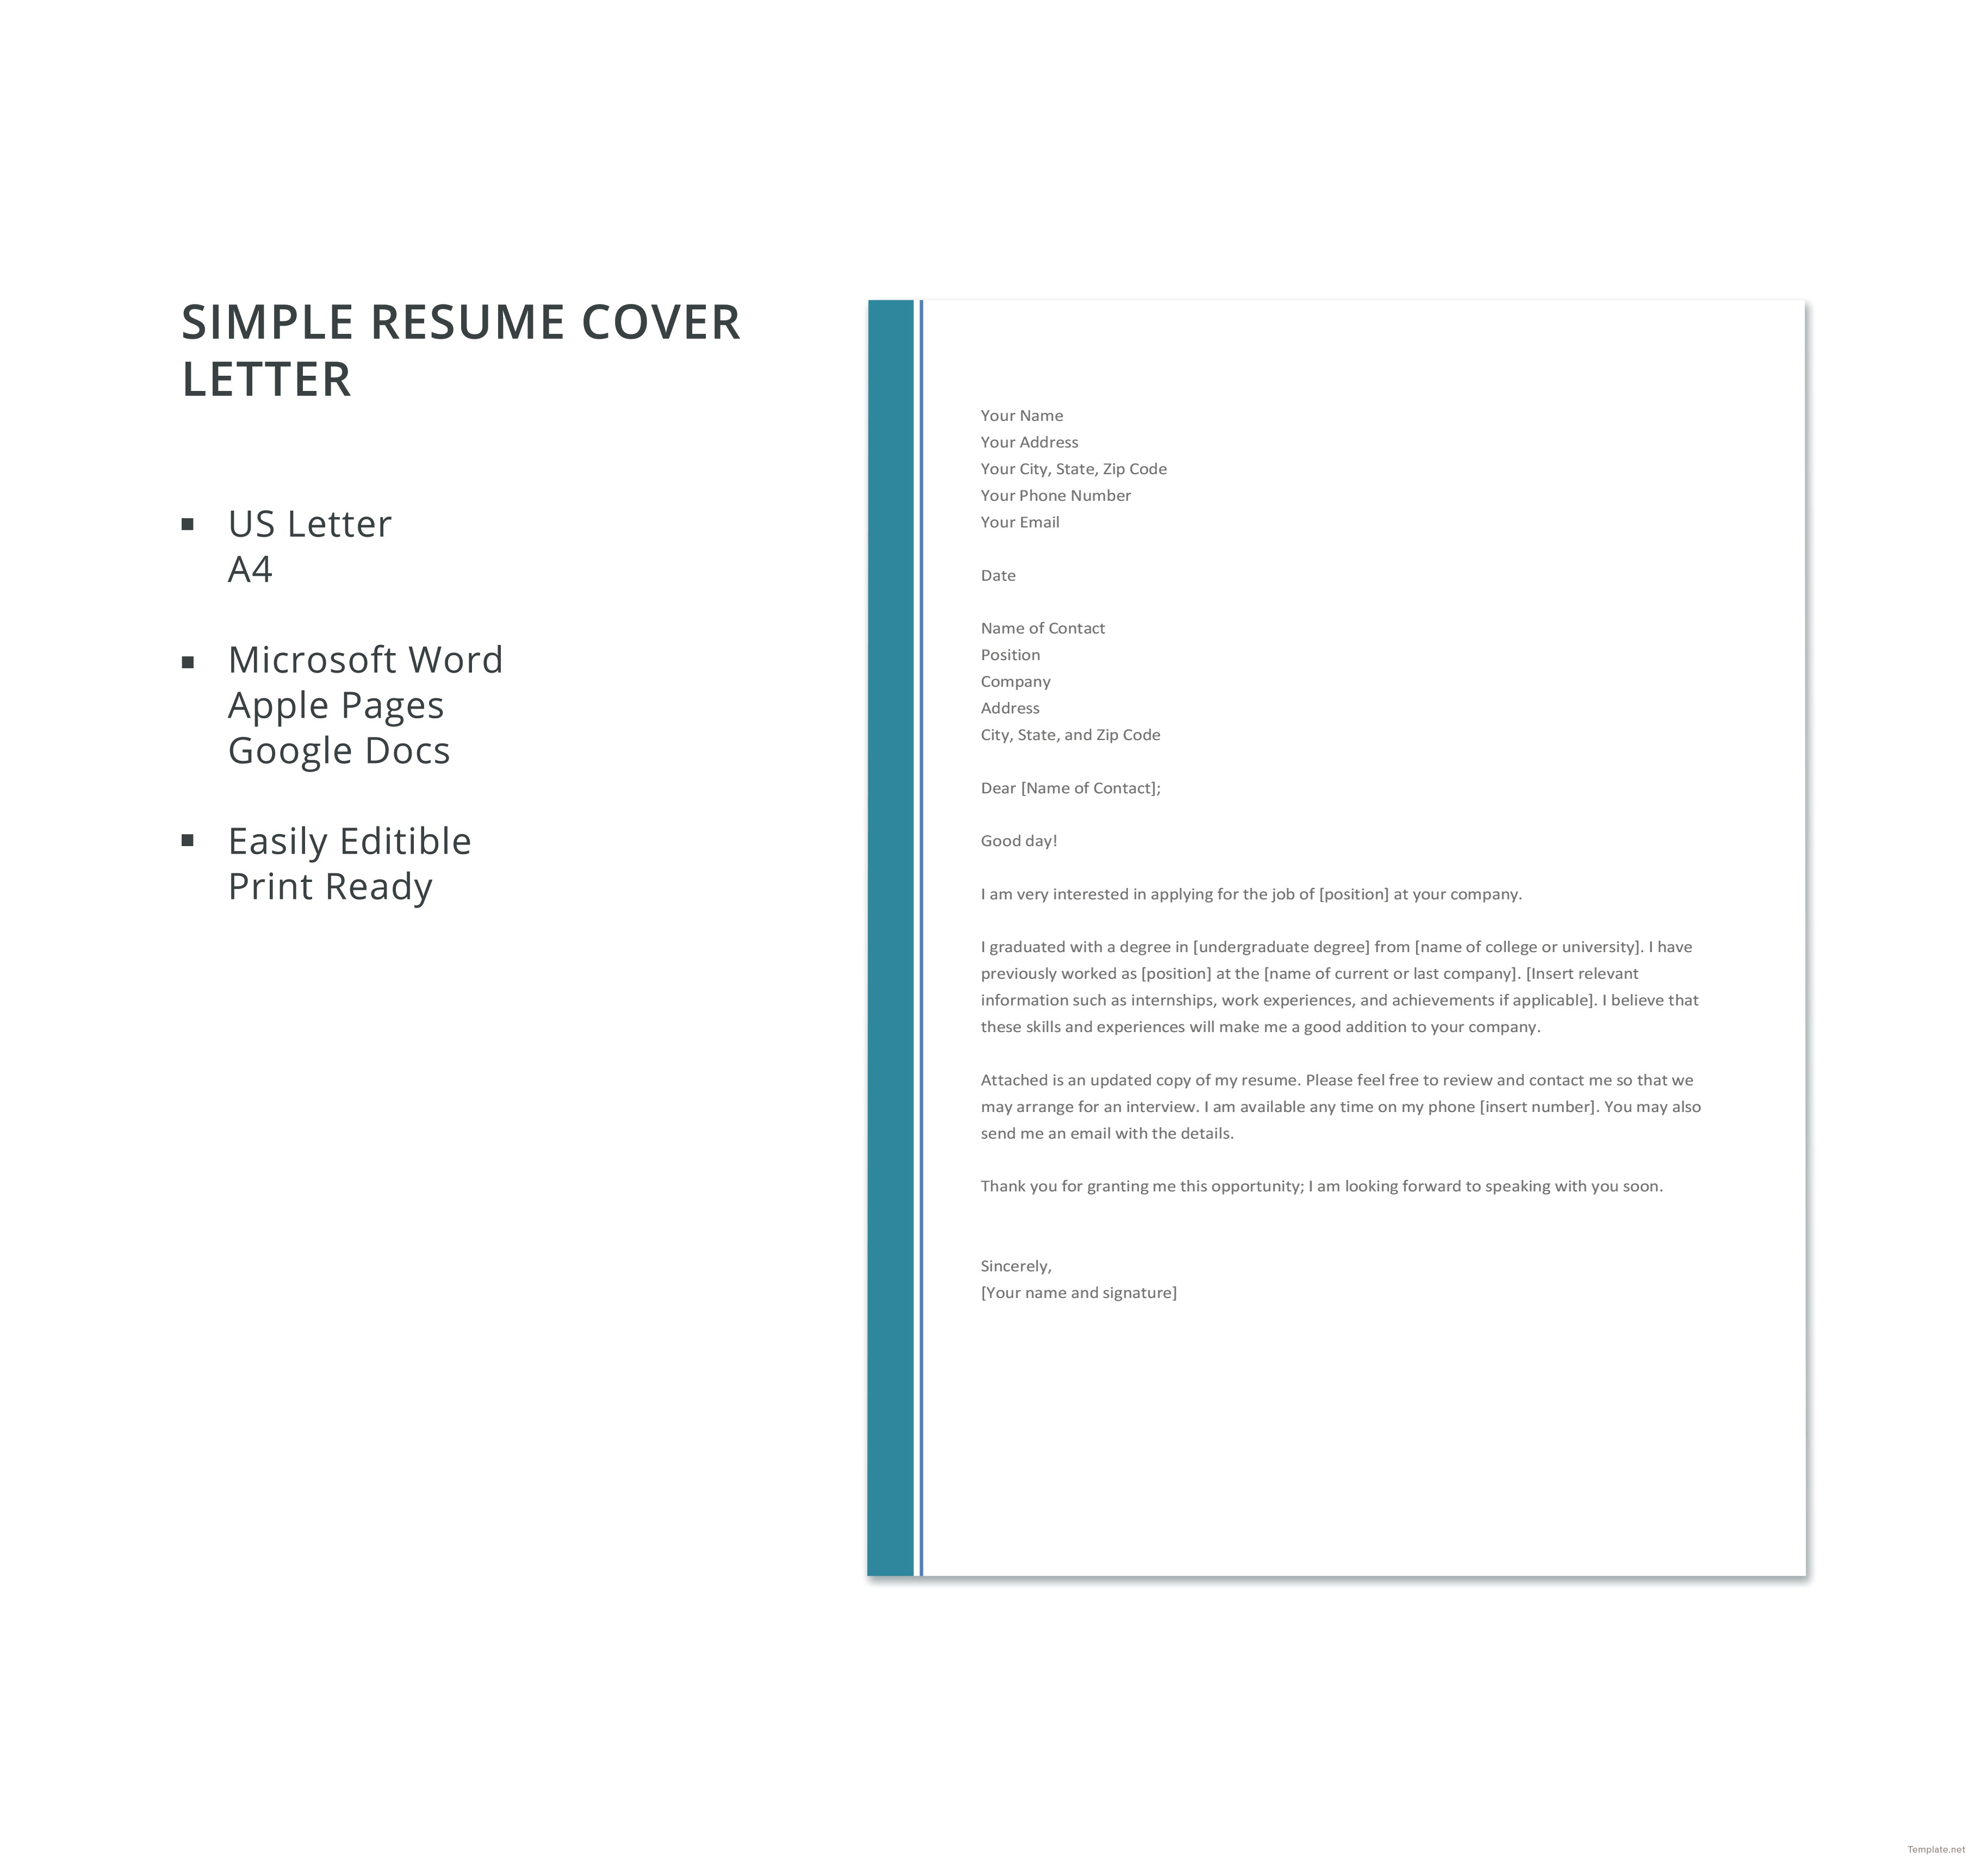 024 Resume And Cover Letter Template Simple Wondrous Ideas Nursing - Free Printable Resume Cover Letter Templates